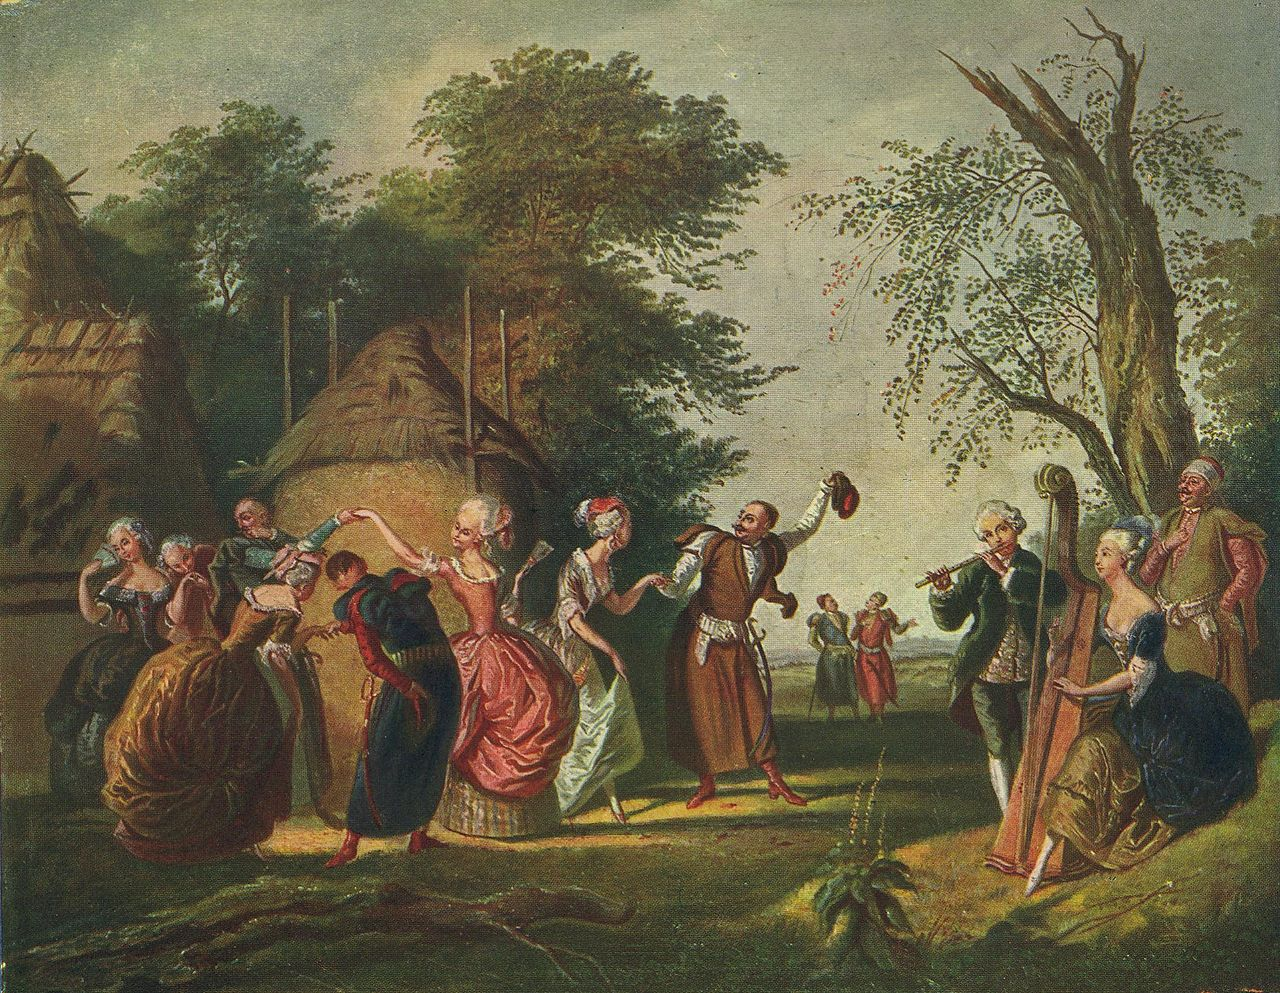 Polonaise in the Open Air - this 19th century painting by Korneli Szlegel portrays Polish nobles dancing Polonaise in the open; Source: Wikimedia/CC